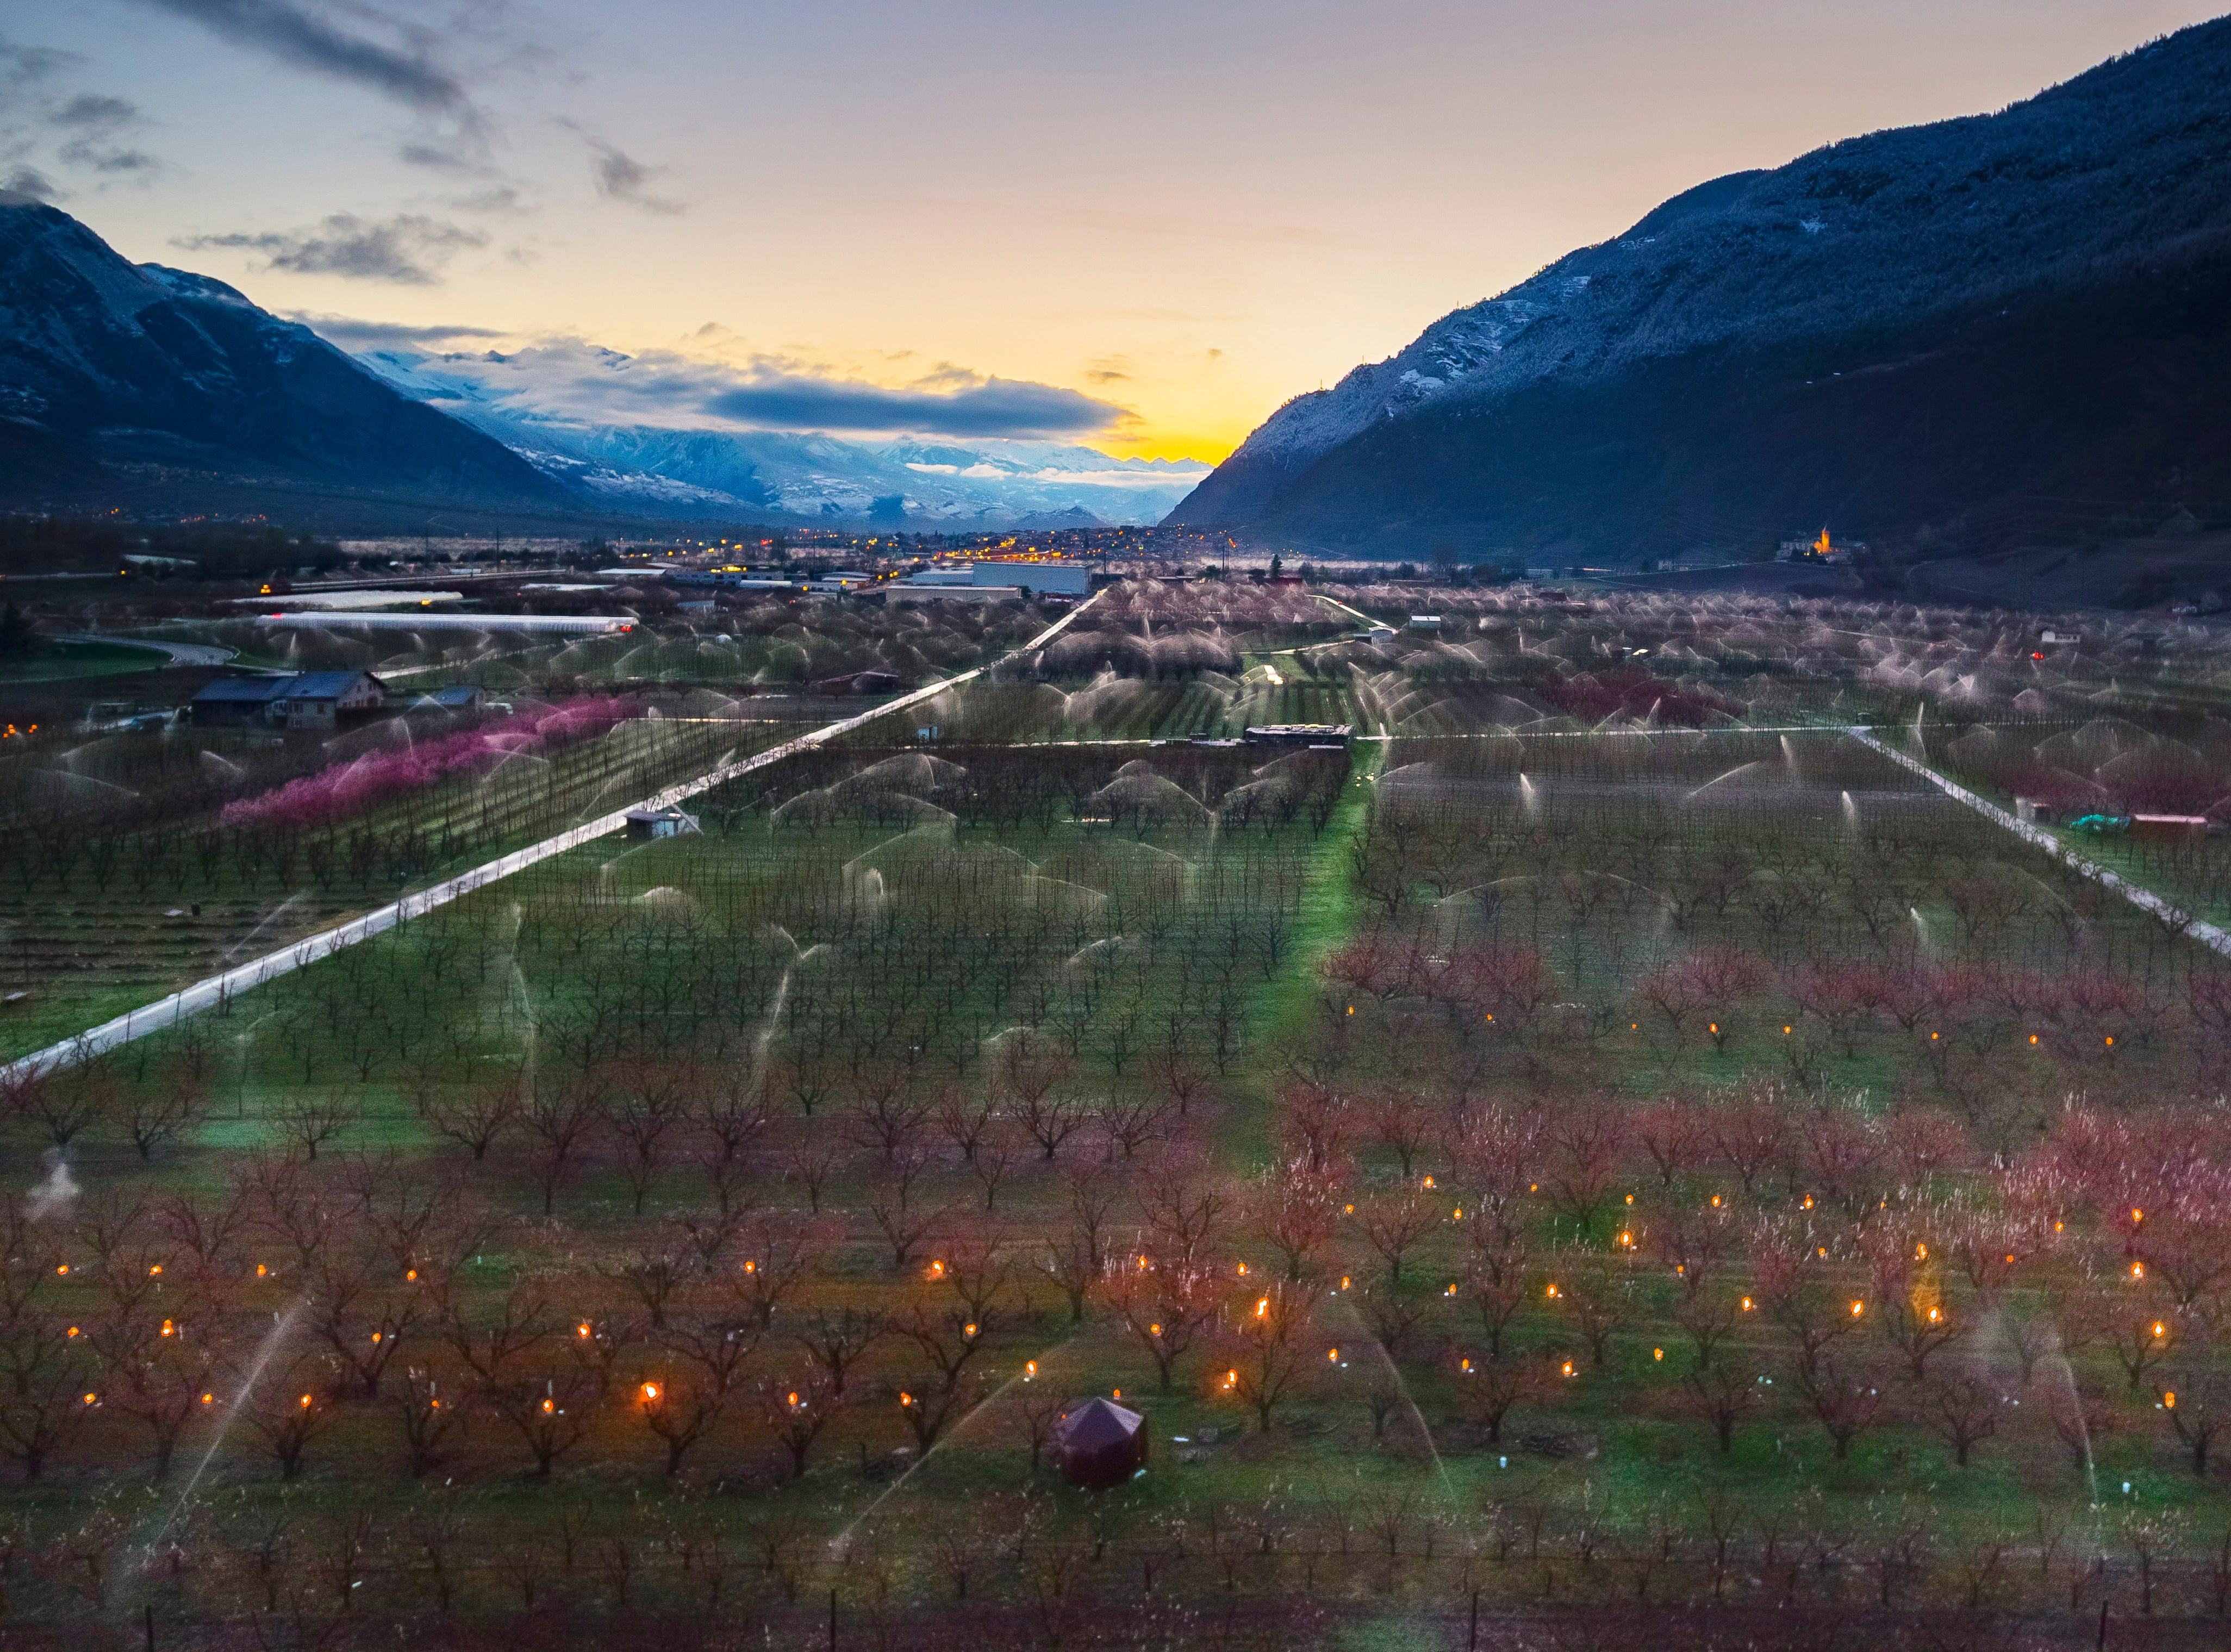 Anti-frost candles burn in apricot orchards to protect blooming buds and flowers from the frost, in the middle of the Swiss Alps, in Saxon, Canton of Valais, Switzerland, Friday, April 5, 2019. With an unusually low temperature forecast for the season, fruit growers try to protect their buds from frost damage with two different means, icy water or large candles.